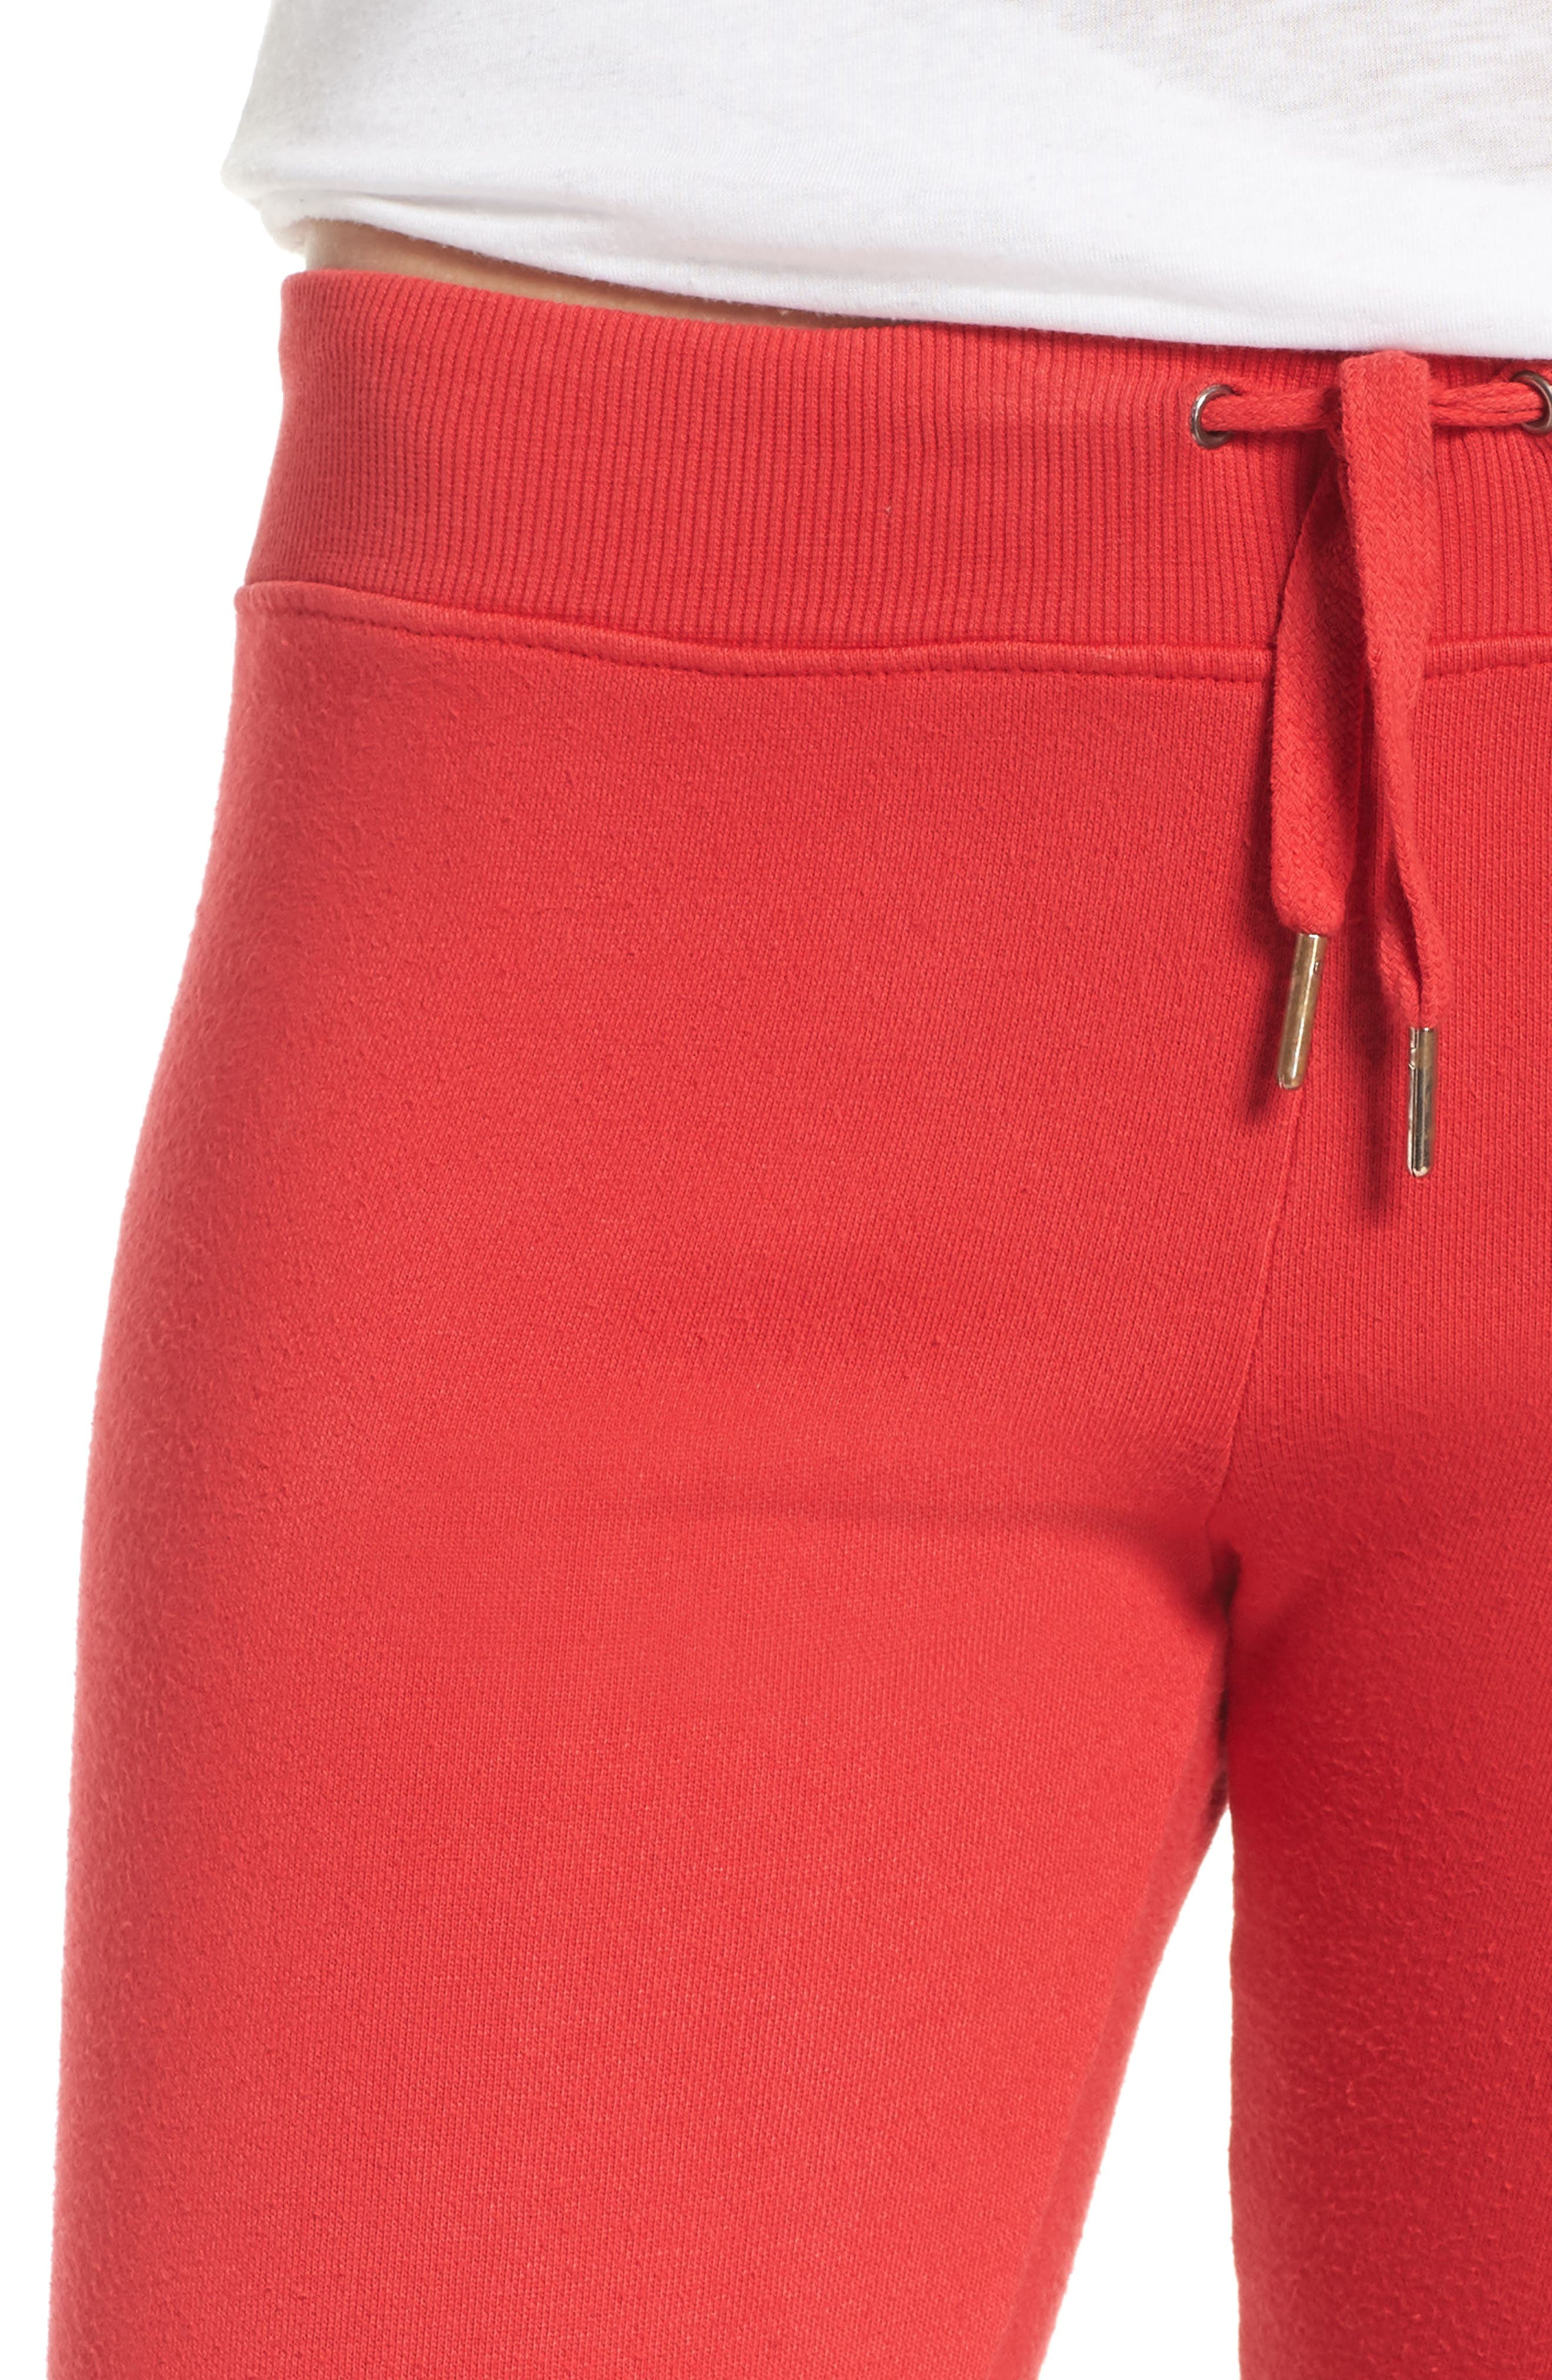 Loung Sweatpants,                             Alternate thumbnail 6, color,                             Poppy